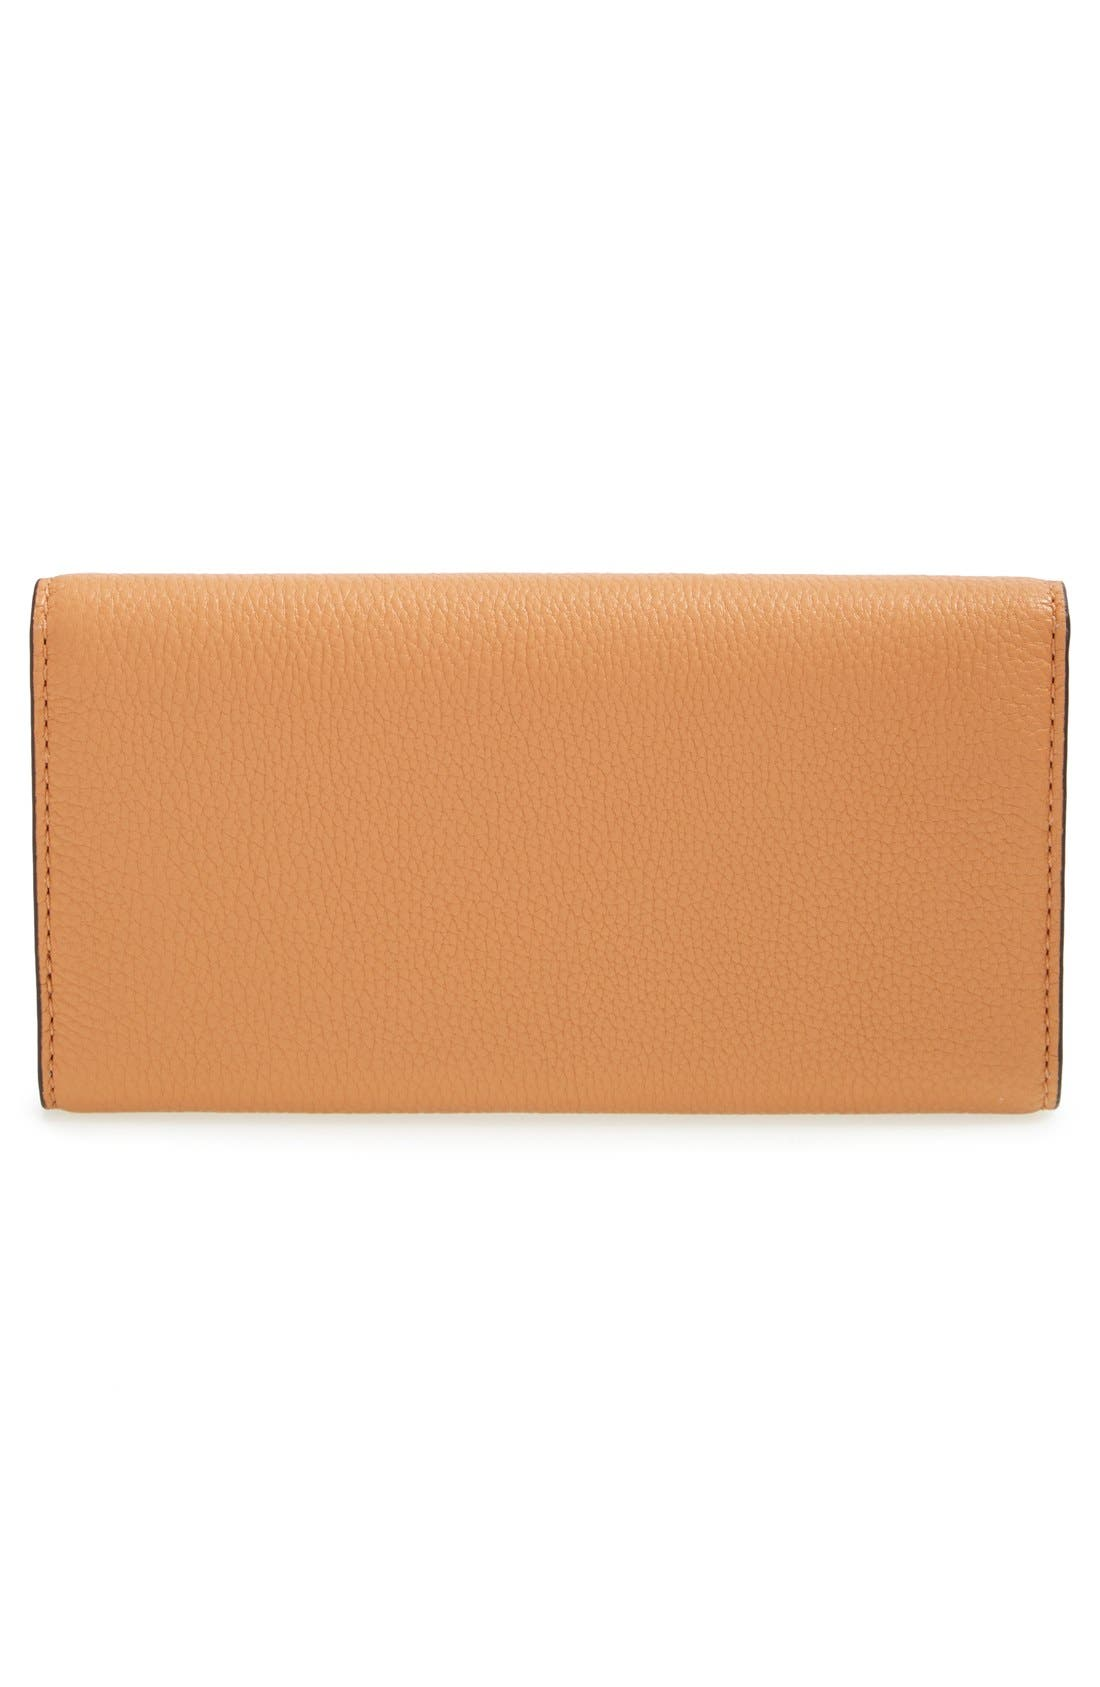 Alternate Image 3  - MICHAEL Michael Kors 'Fulton' Trifold Leather Wallet